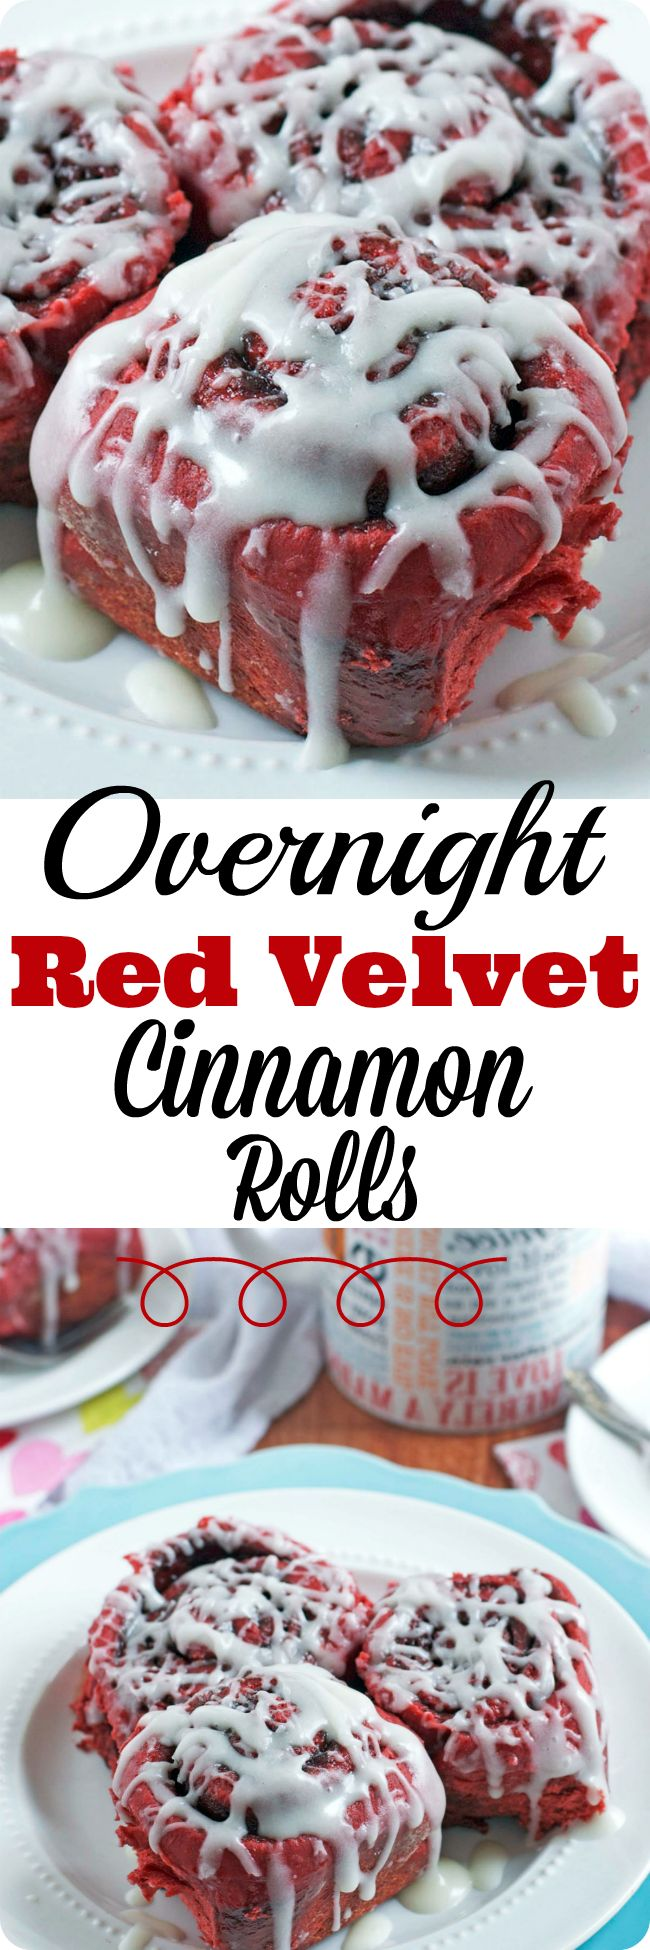 Tender, fluffy, and ooey-gooey buttermilk cinnamon rolls with the classic flavor of red velvet cake, topped off with cream cheese frosting.This overnight cinnamon roll recipe is prepped entirely the day before, so you can enjoy all the benefits of homemad (cinnamon roll glaze)